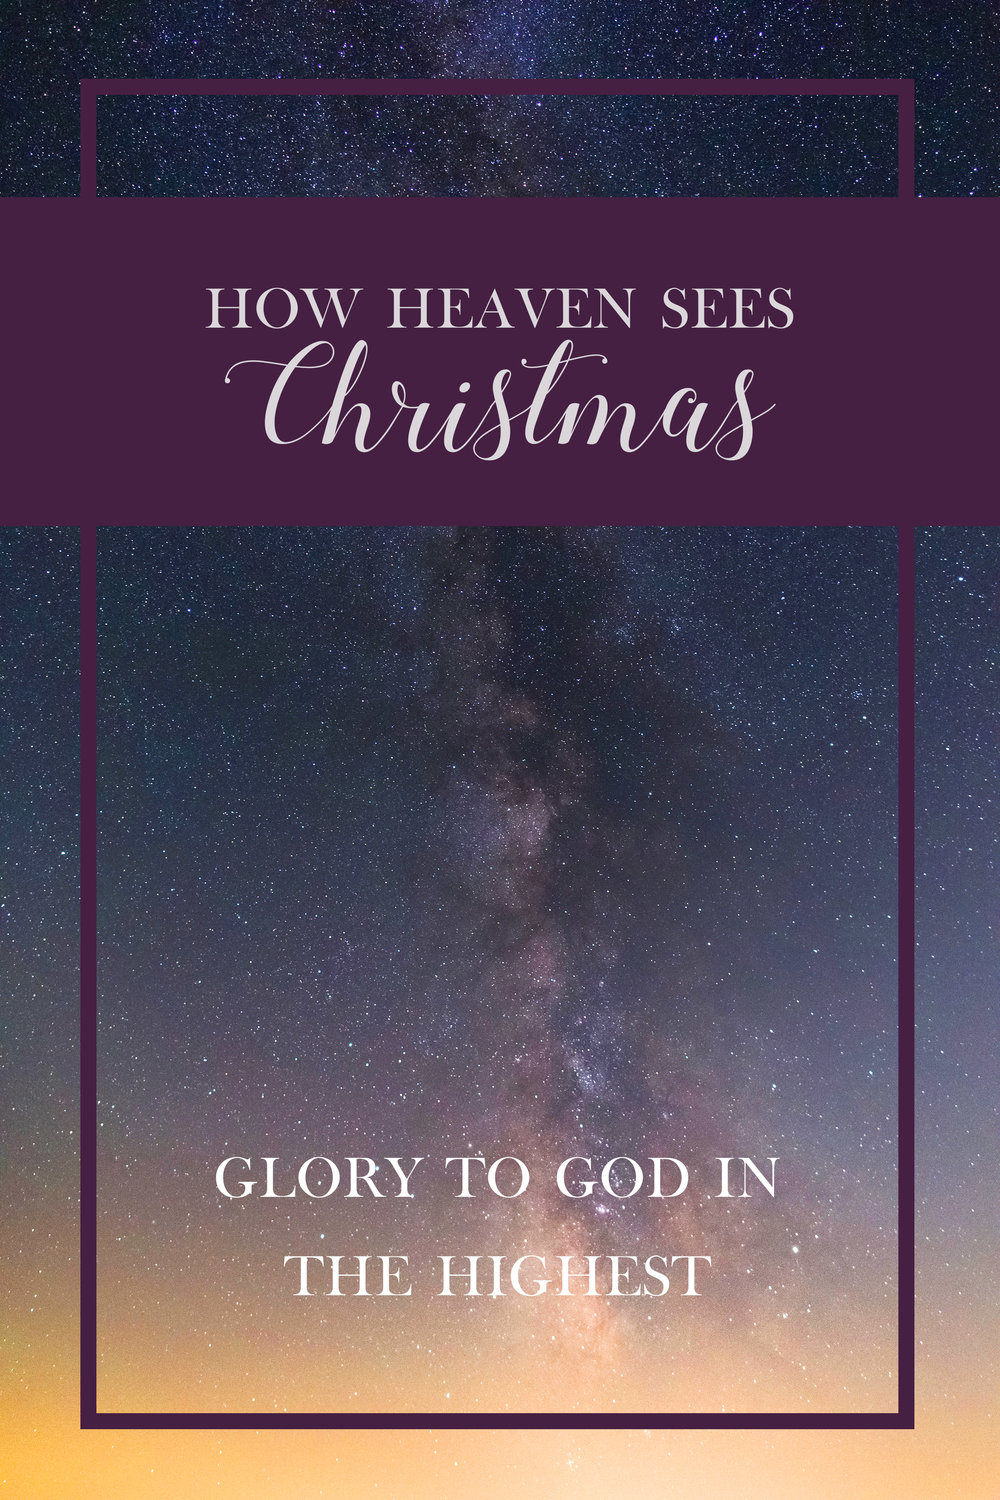 How do you find hope in Christmas when, year after year, the world just seems to grow darker? Perhaps it would help to take a look at Christmas from heaven's perspective.